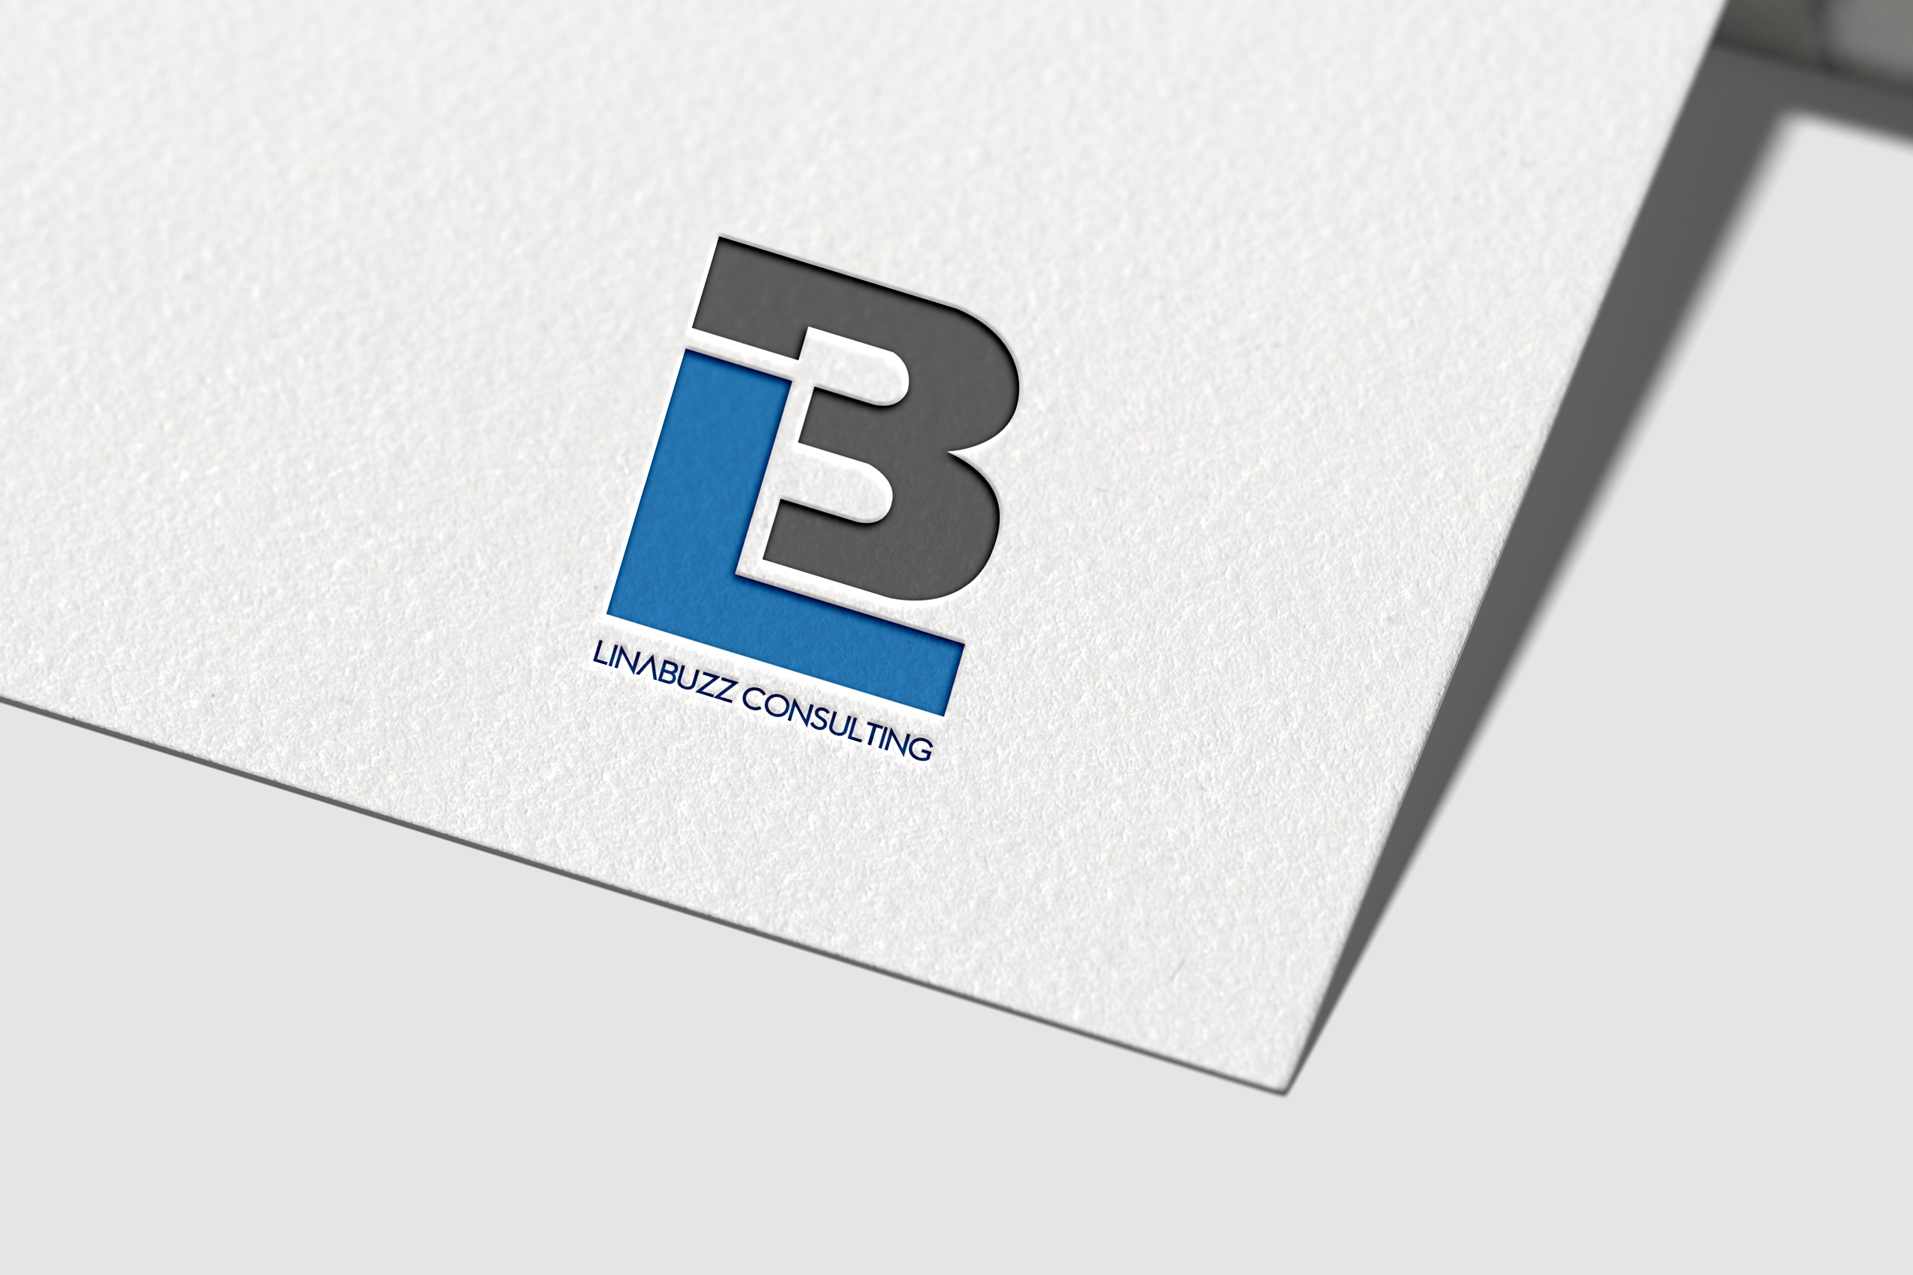 Linabuzz-Consulting-logo-on-paper